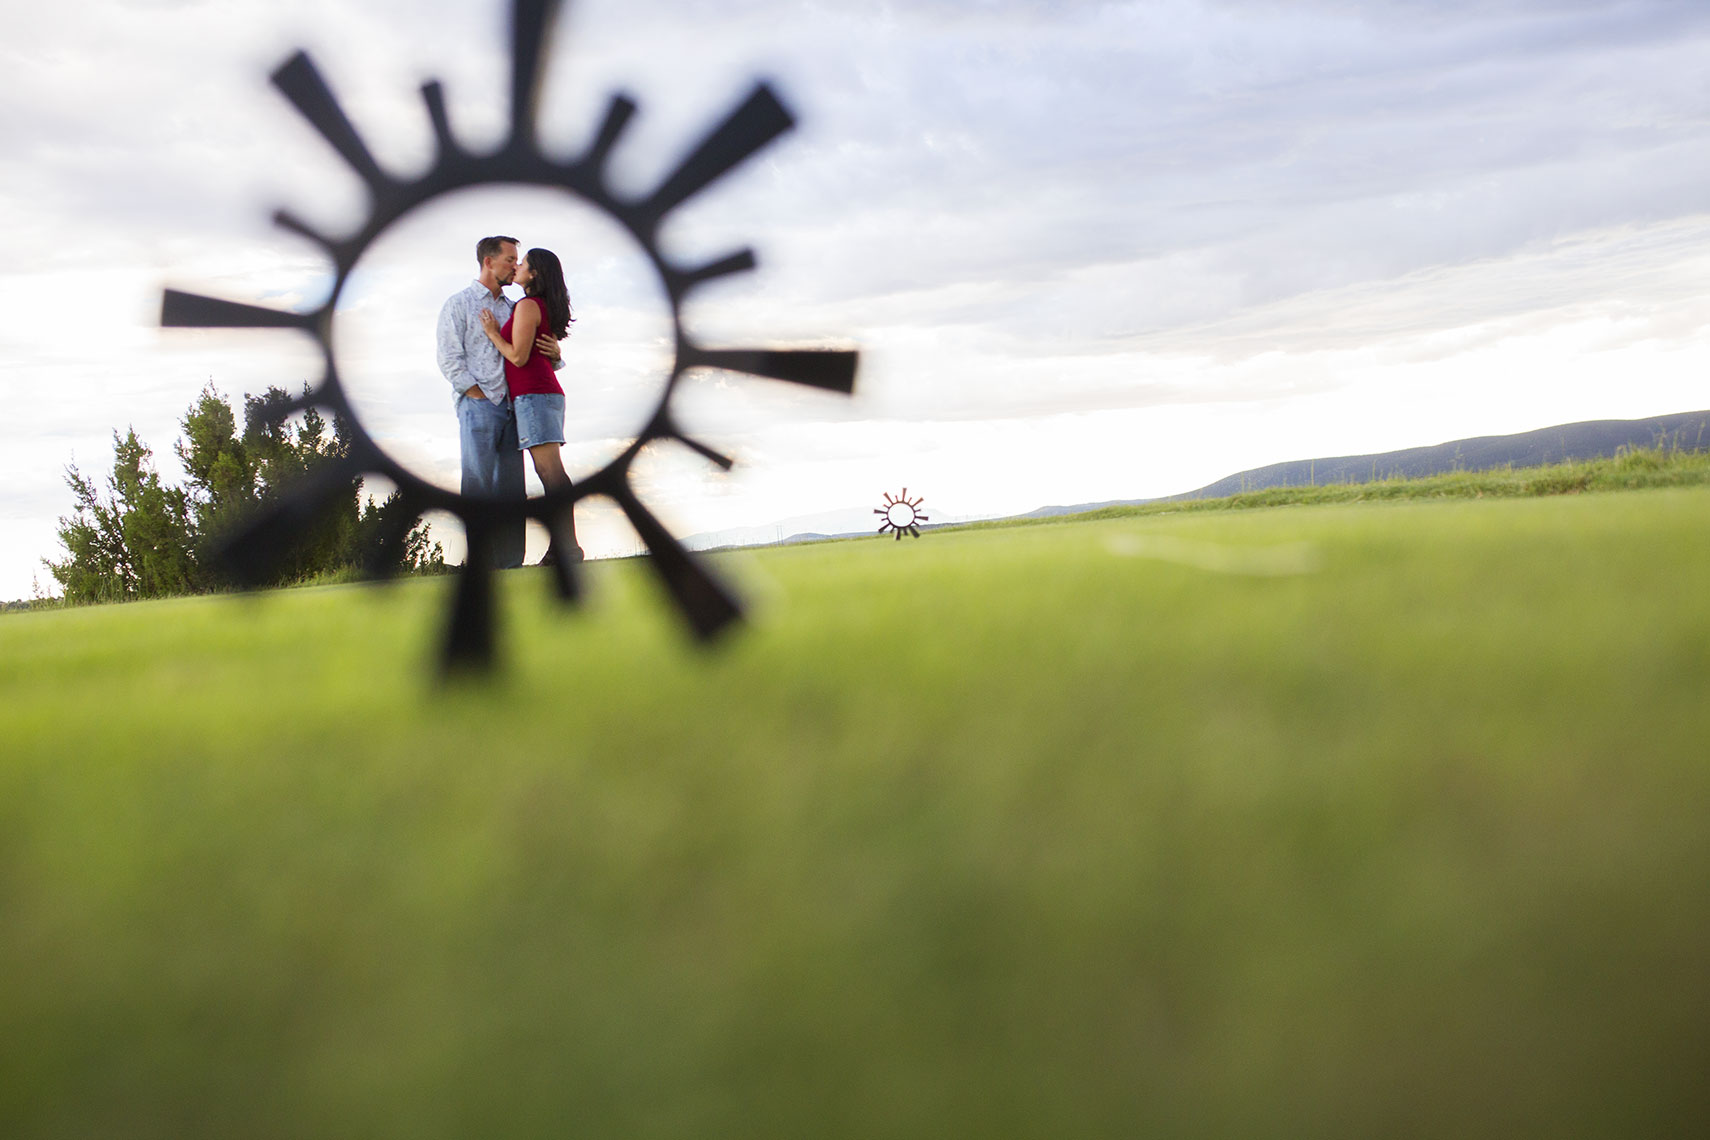 Las Campanas Engagement Photography in Santa Fe